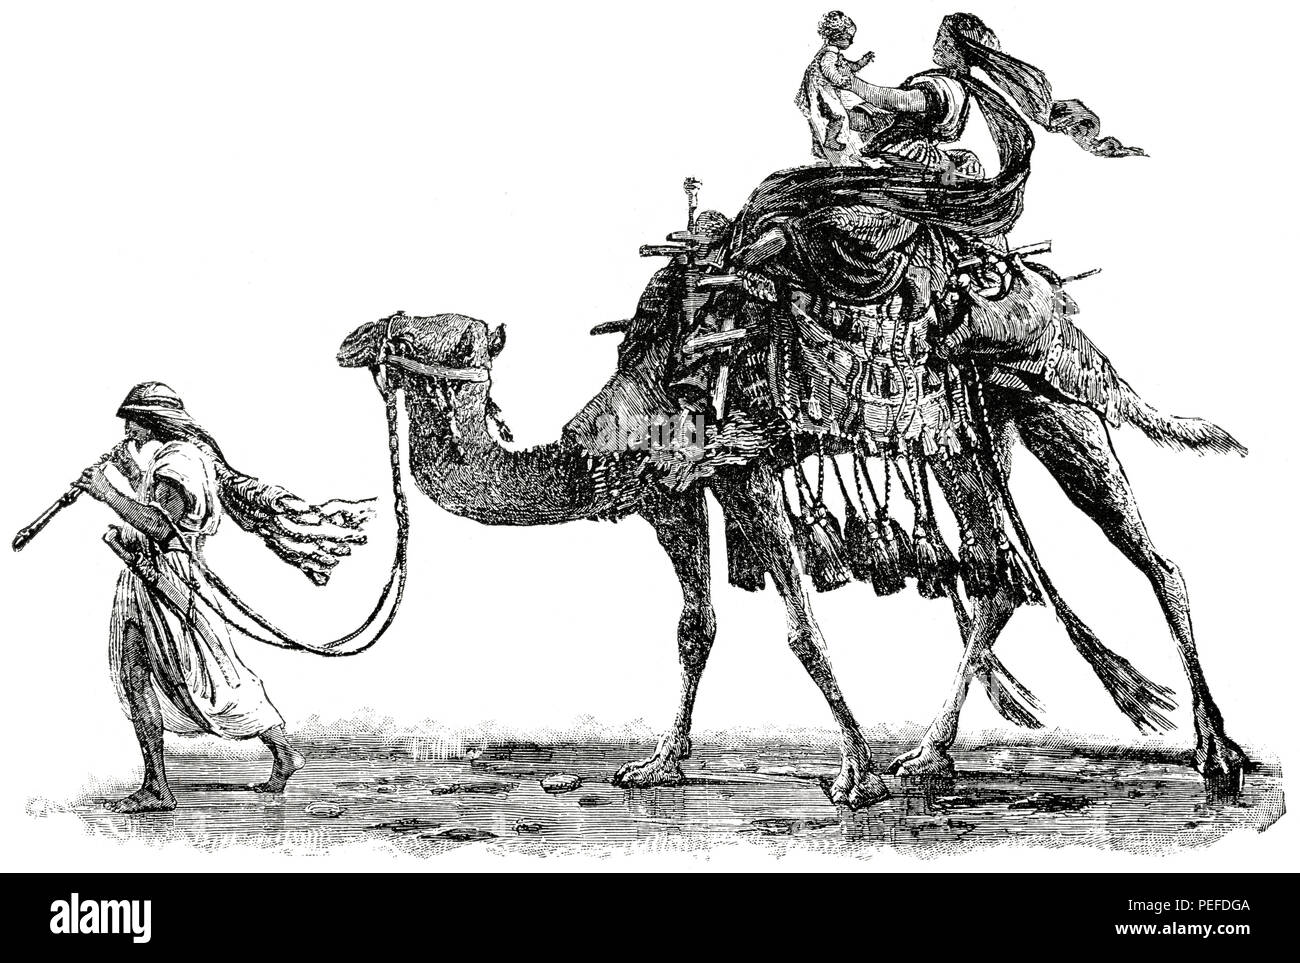 An Arab and his Family, Turkey, 1890's, Illustration, Classical Portfolio of Primitive Carriers, by Marshall M. Kirman, World Railway Publ. Co., Illustration, 1895 - Stock Image